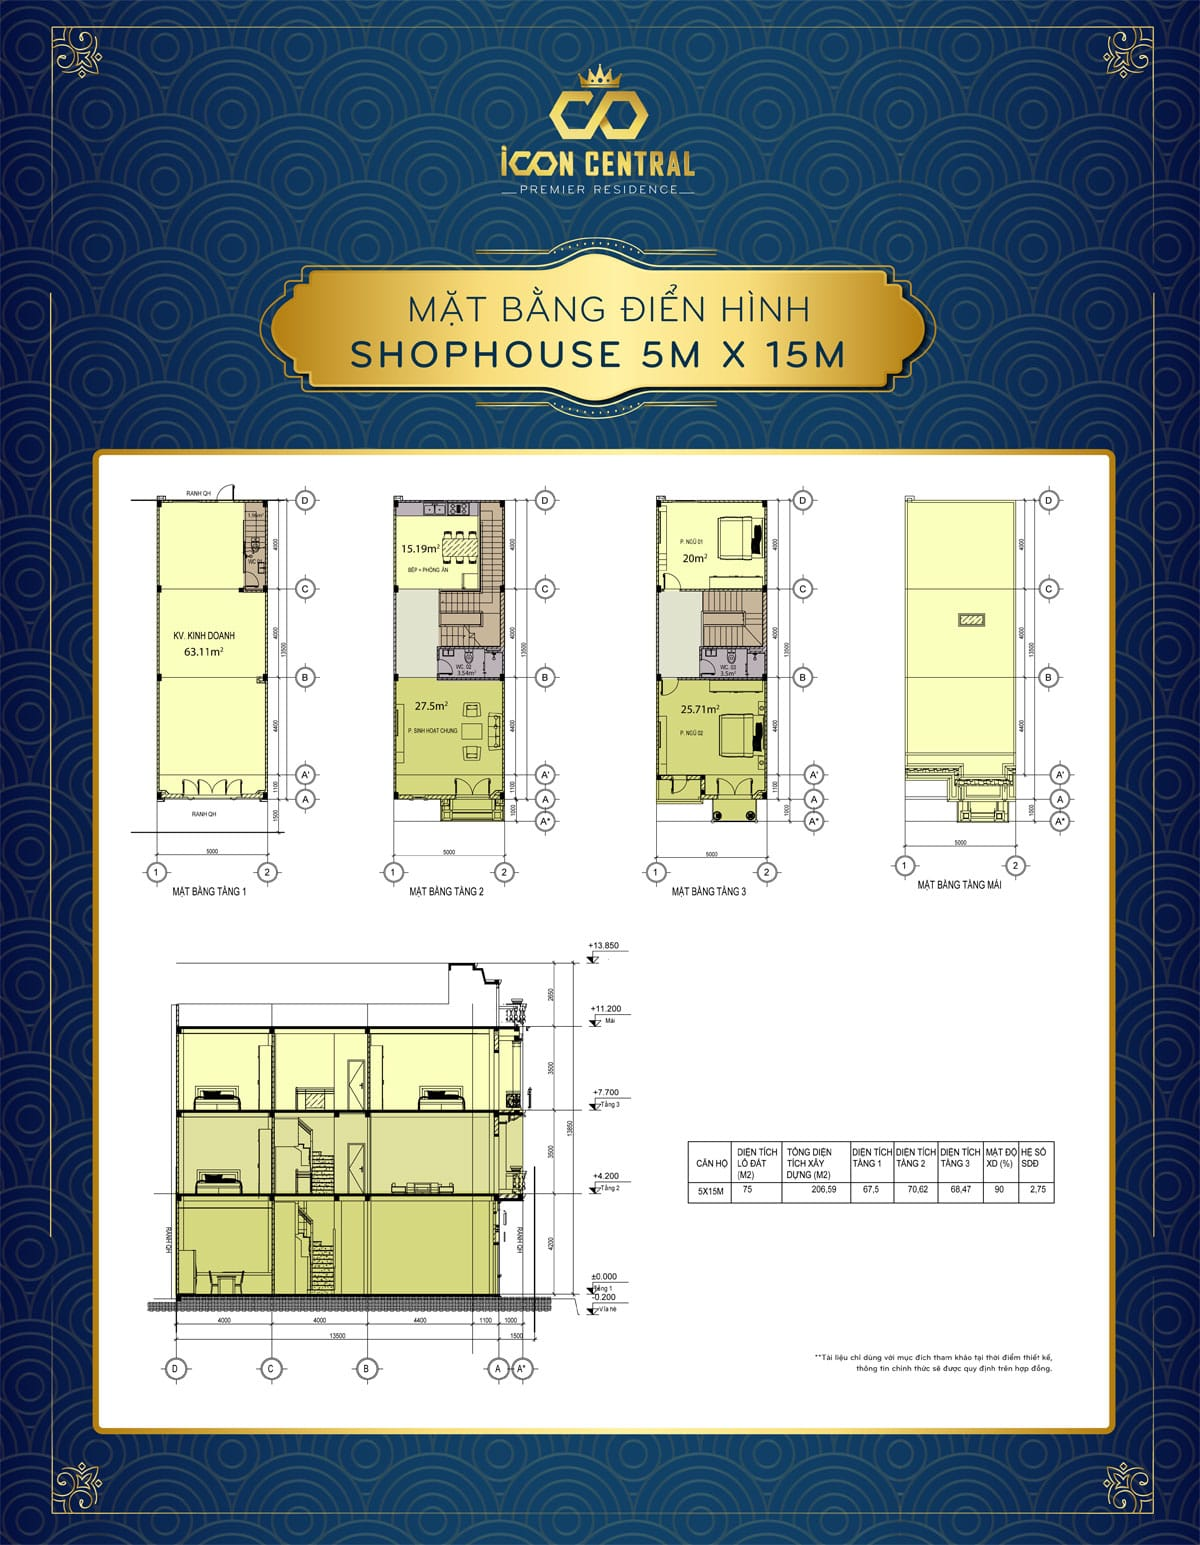 mat bang dien hinh shophouse 5 x 15m icon central - SHOP OFFICE ICON CENTRAL DĨ AN BÌNH DƯƠNG